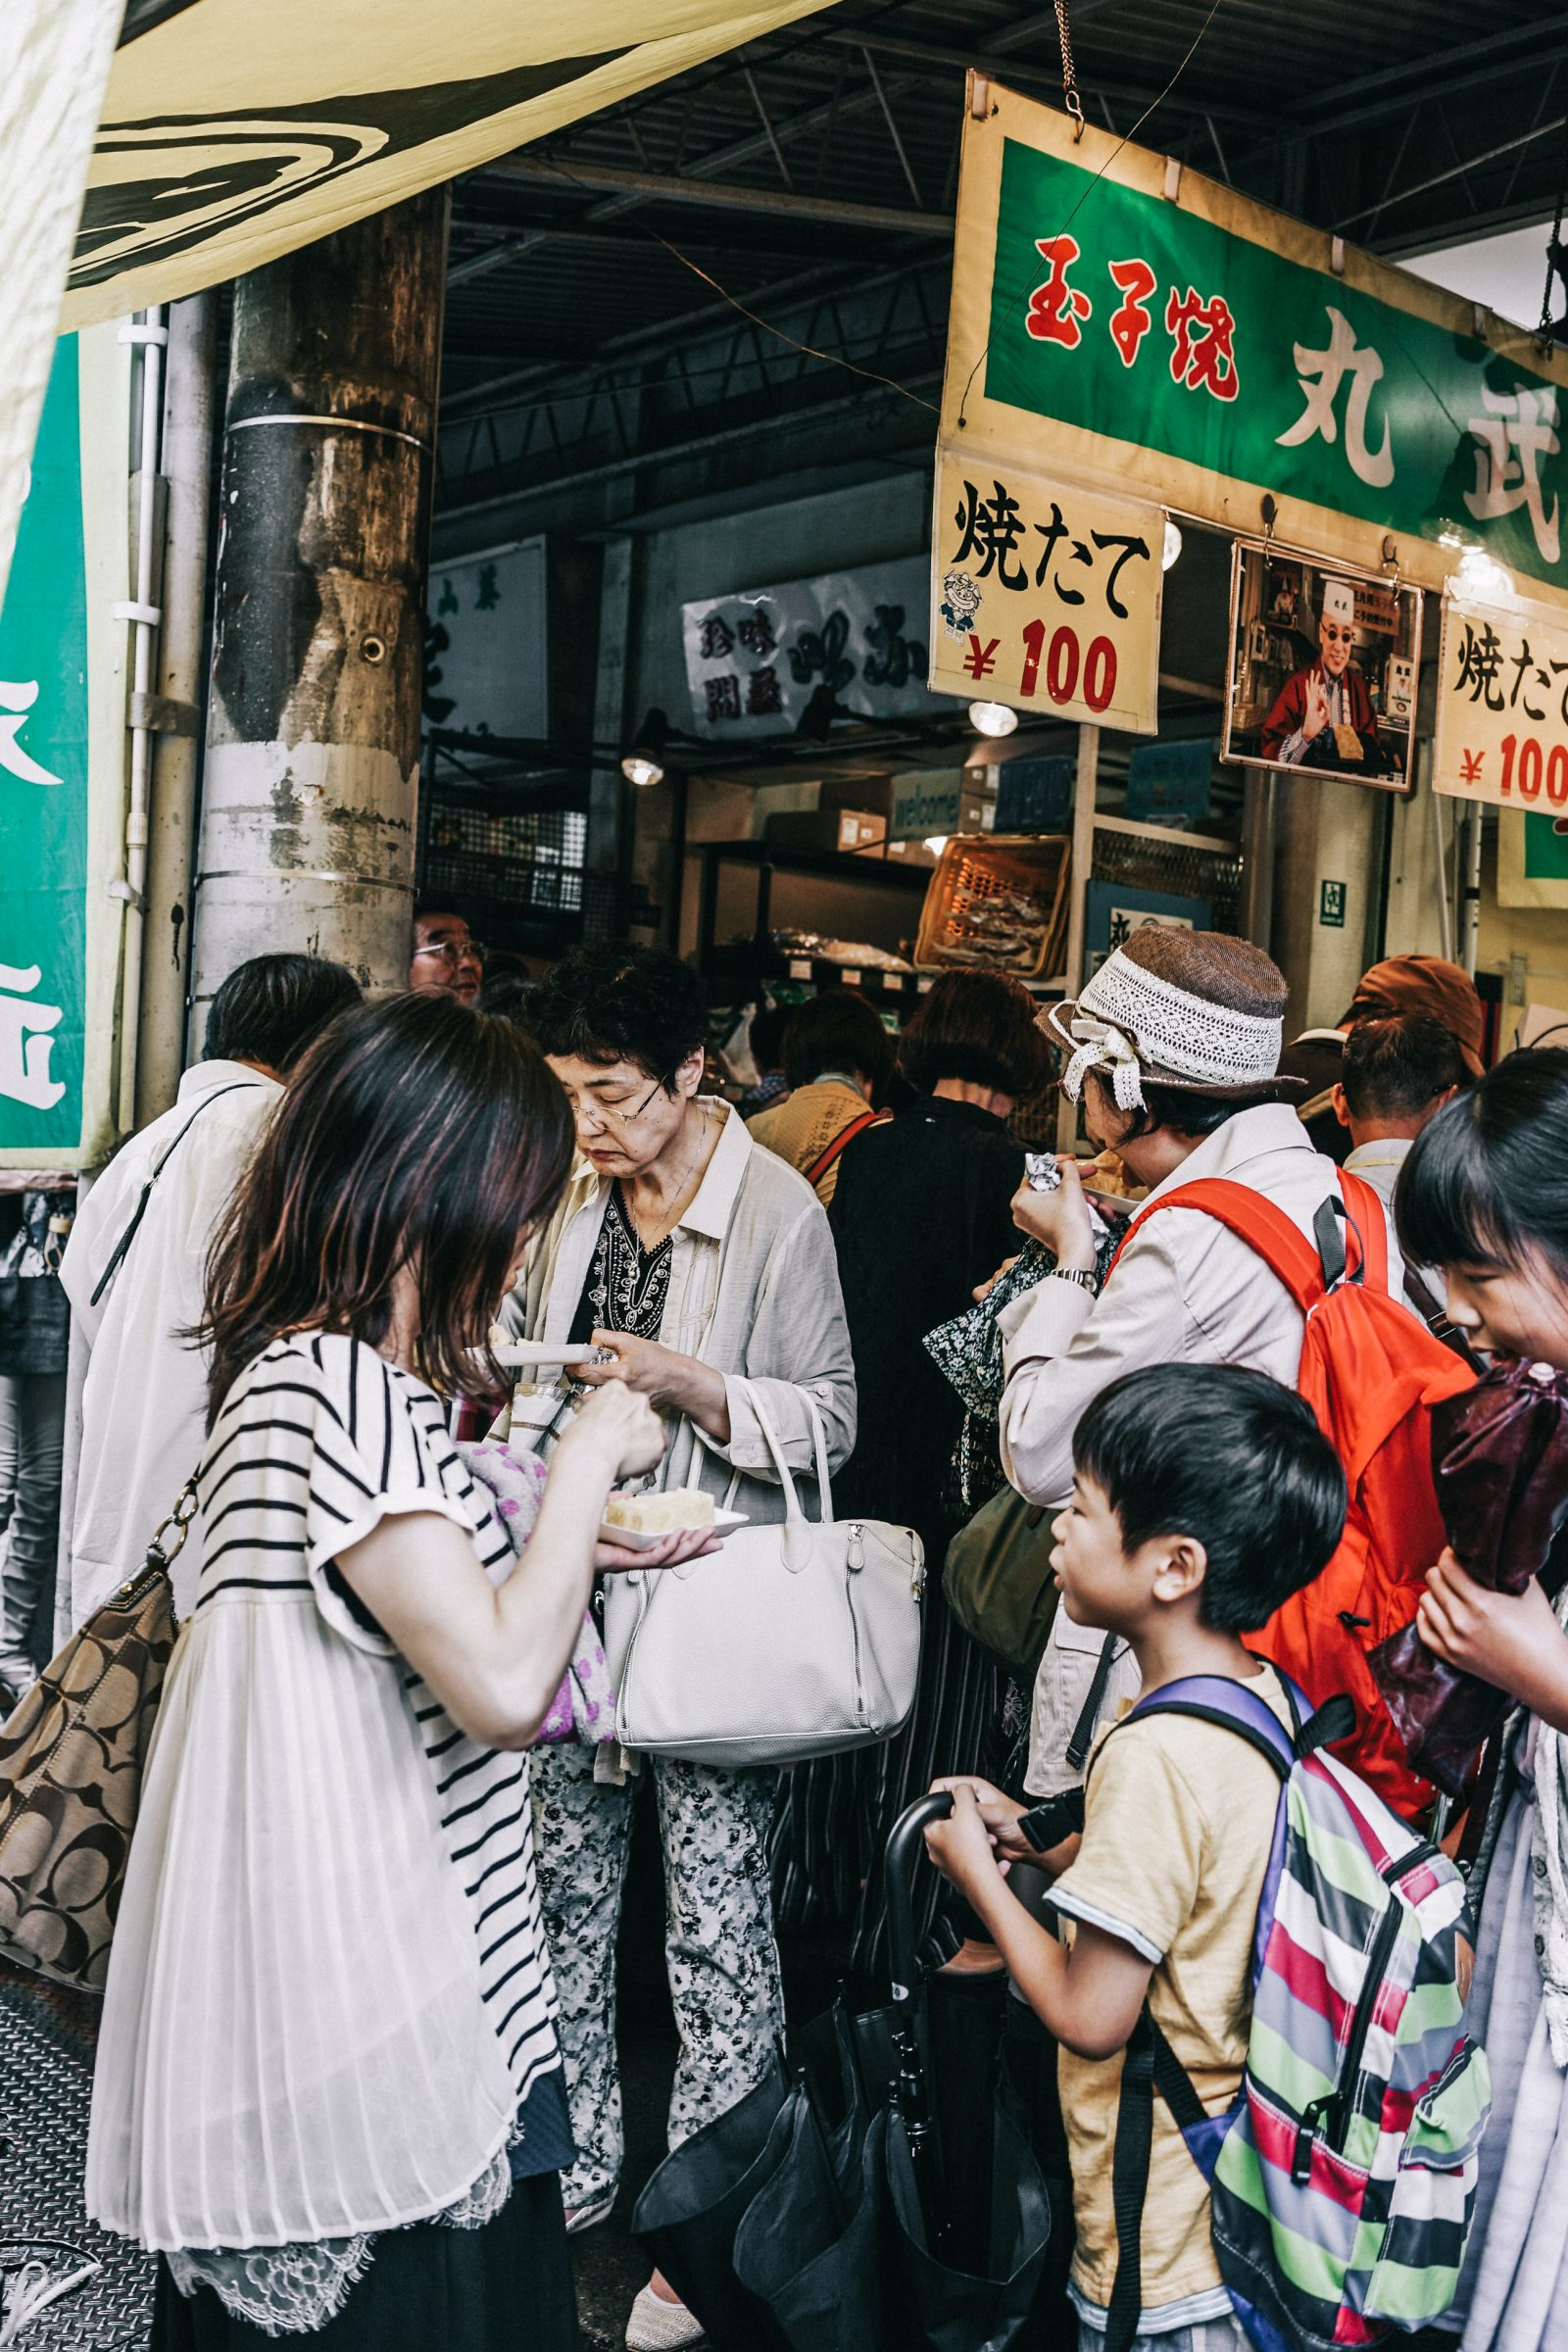 Tokyo_Travel_Guide-Fish_Market-Harajuku-Levis_Denim_Skirt-Off_The_Shoulders_Top-YSL_Sneakers-Outfit-Collage_Vintage-Street_Style-41